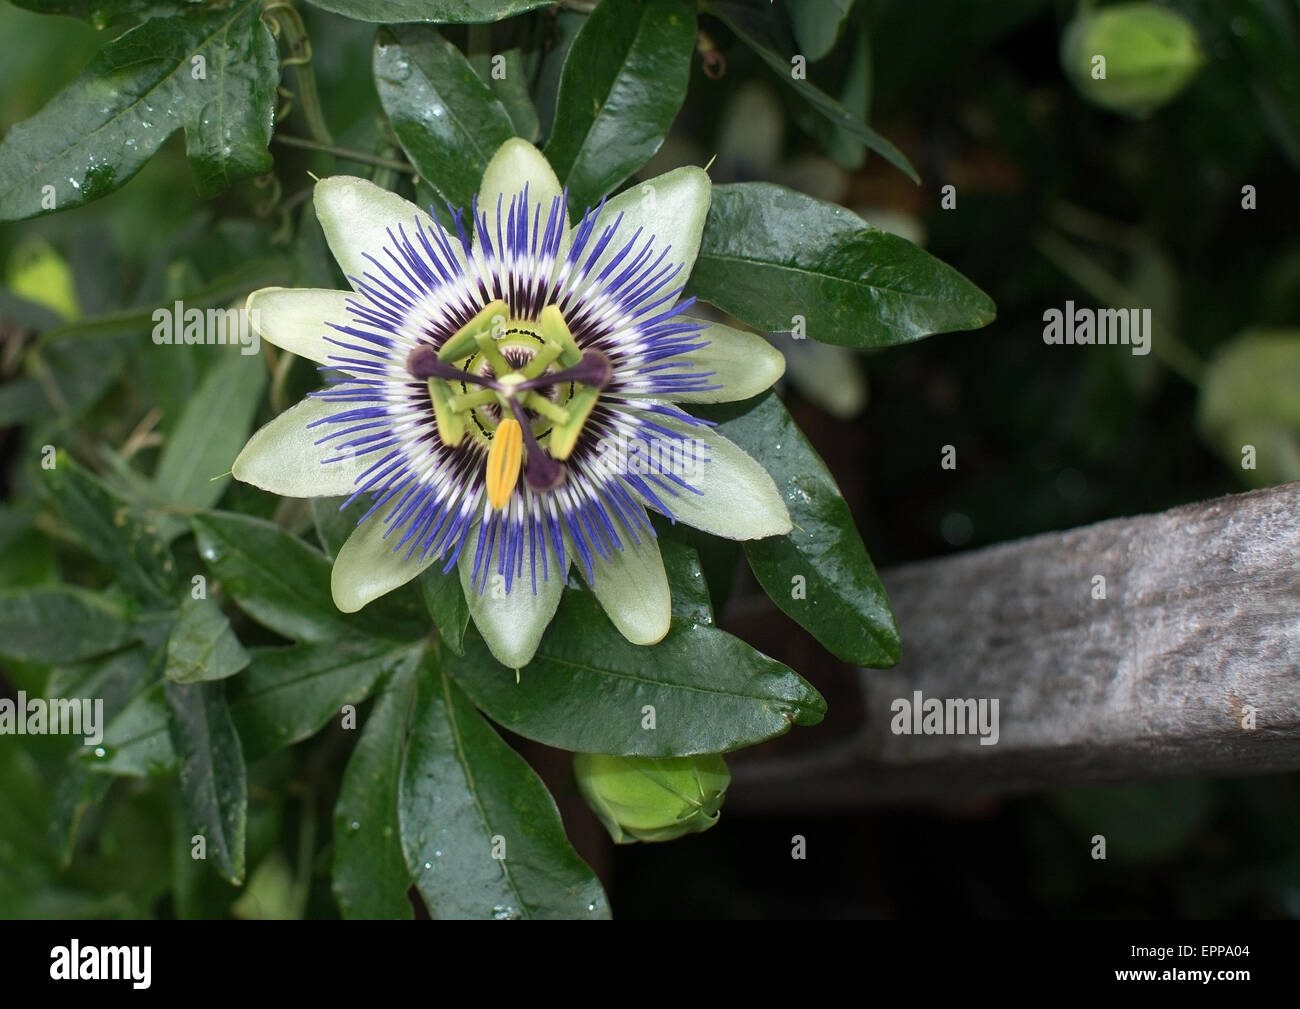 Purple and white passion flower passiflora closeup stock photo purple and white passion flower passiflora closeup dhlflorist Images